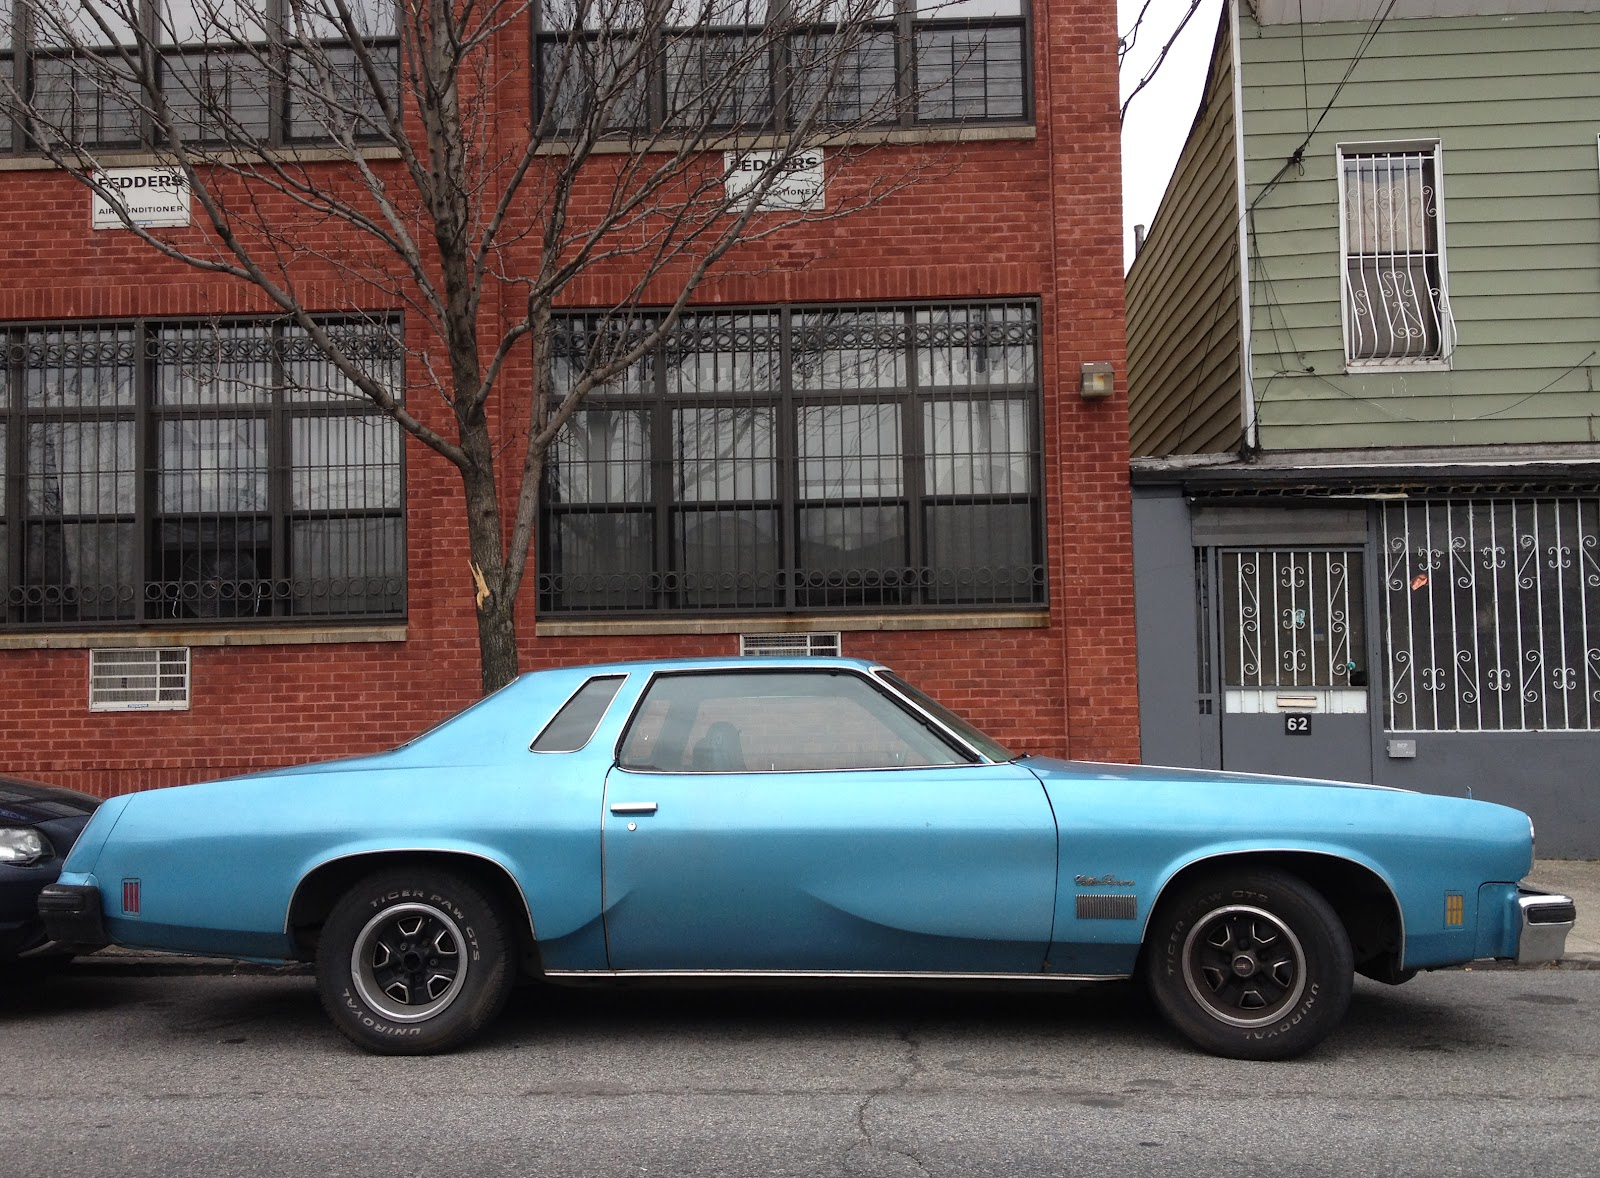 Cscb home 1973 oldsmobile cutlass supreme two door coupe